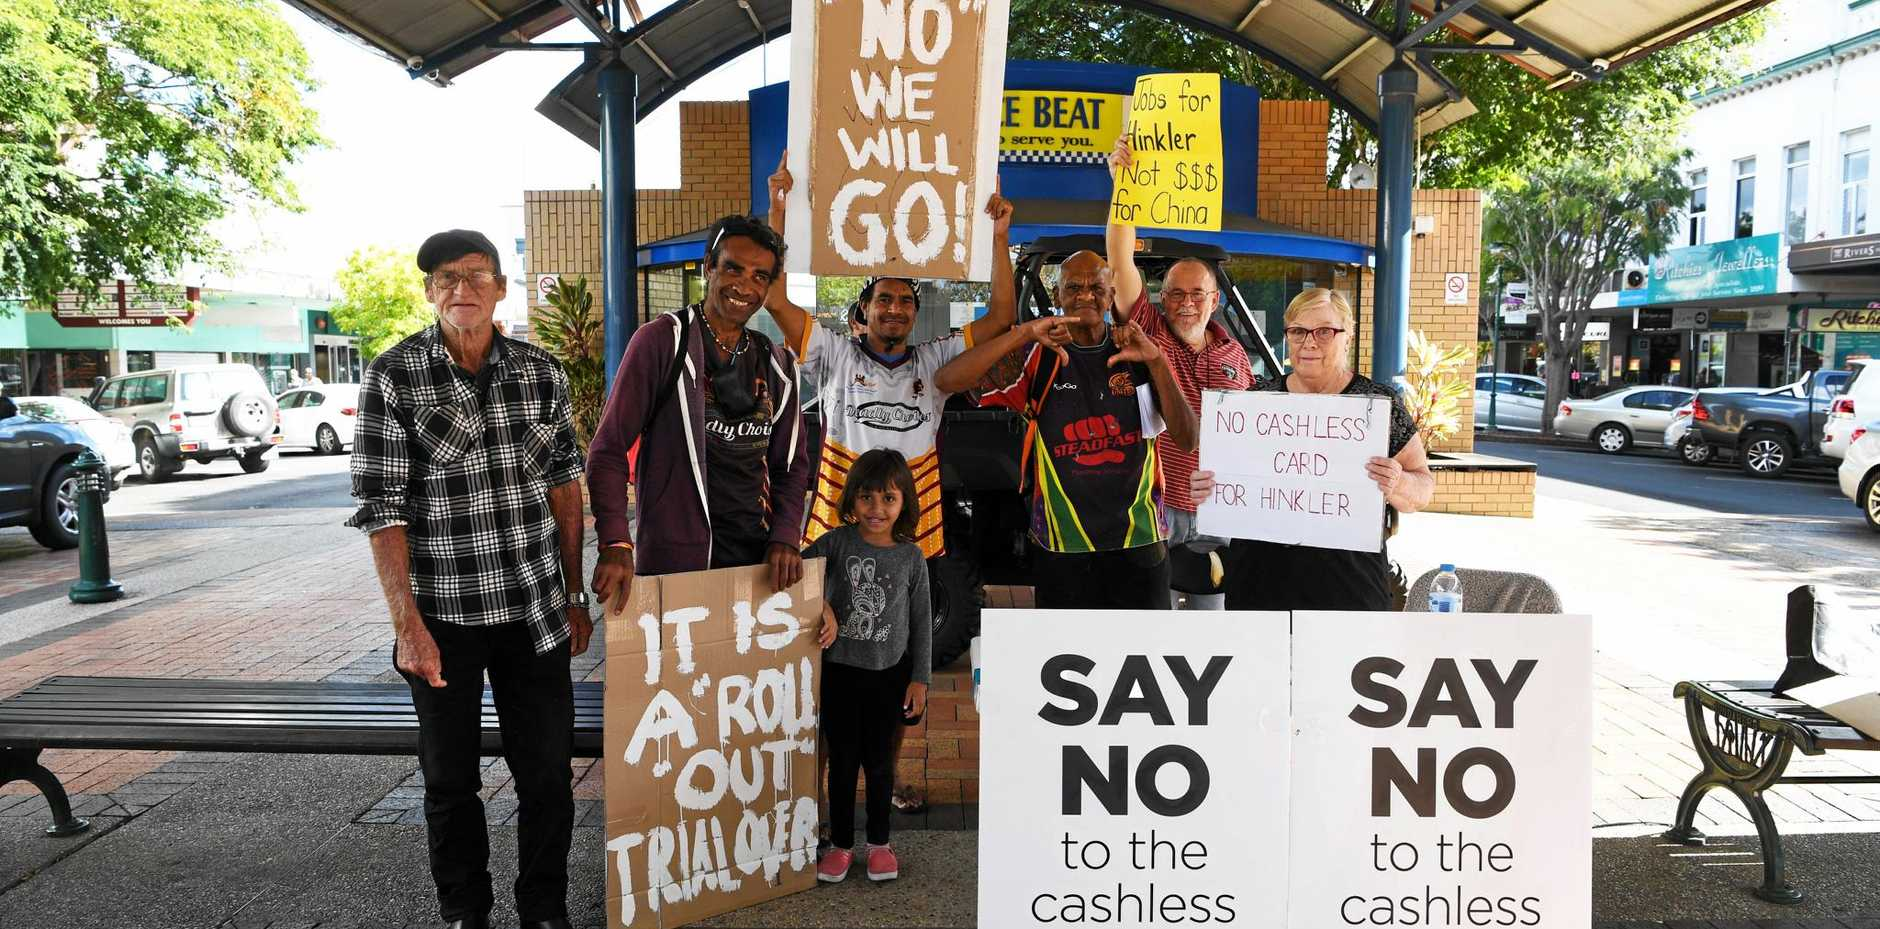 SAY NO: Dennis Ludwick, Katani Eseki, Samia Mangus, Peter Saunders, Clinton Tanna, Ric Glass and Jeeni Lawrence at a Cashless Debit Card protest in Bundy last month.